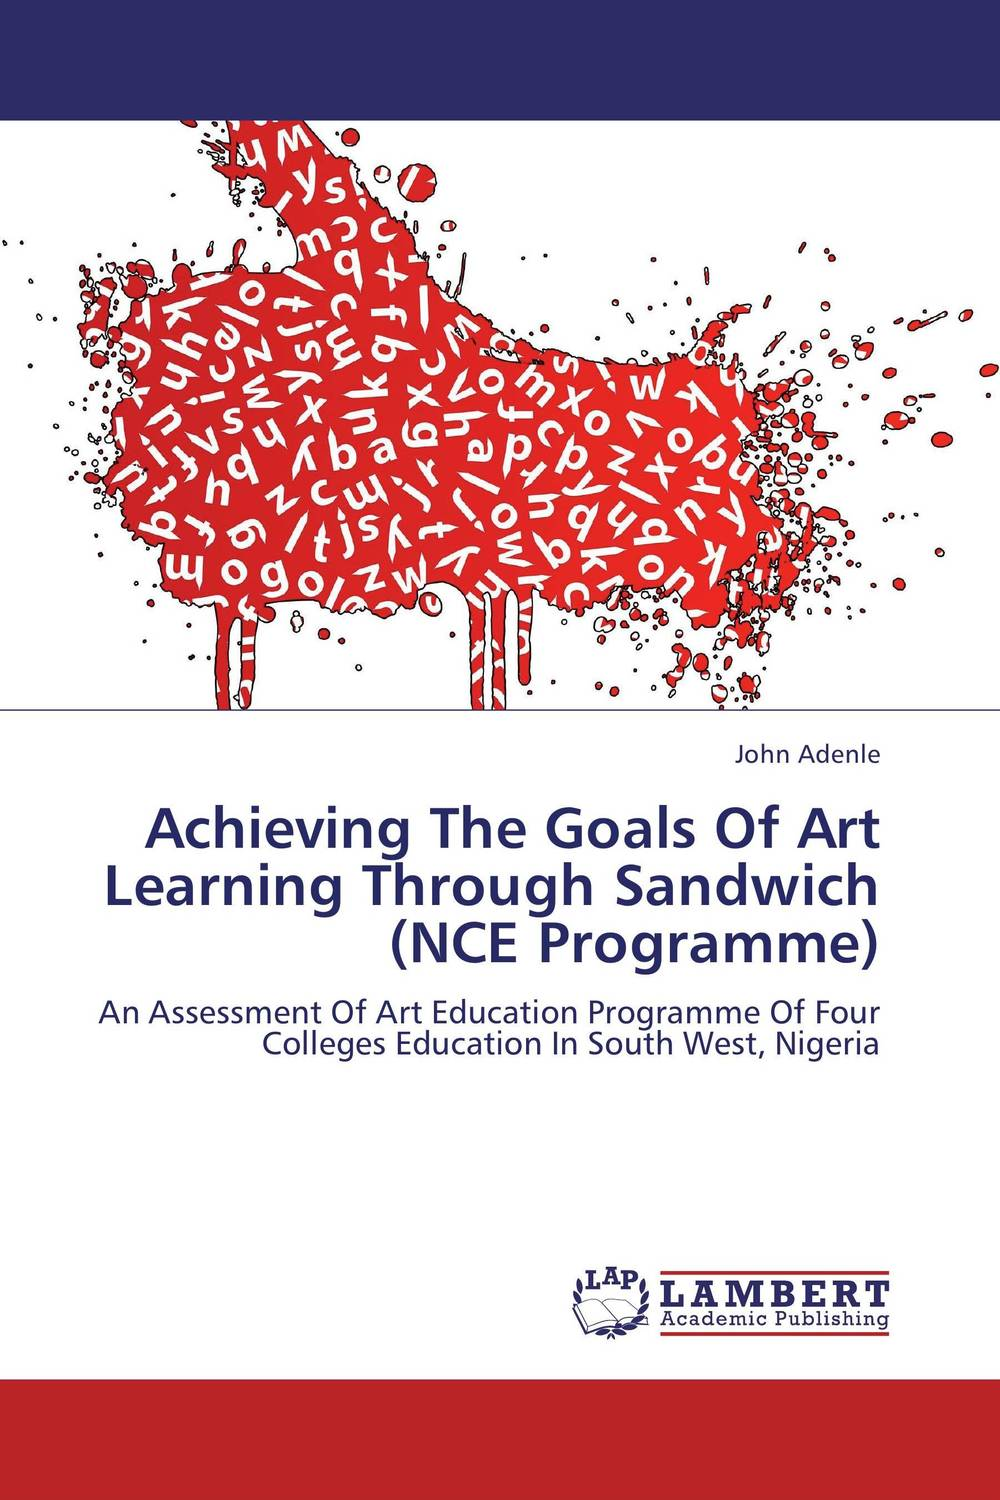 Achieving The Goals Of Art Learning Through Sandwich (NCE Programme)